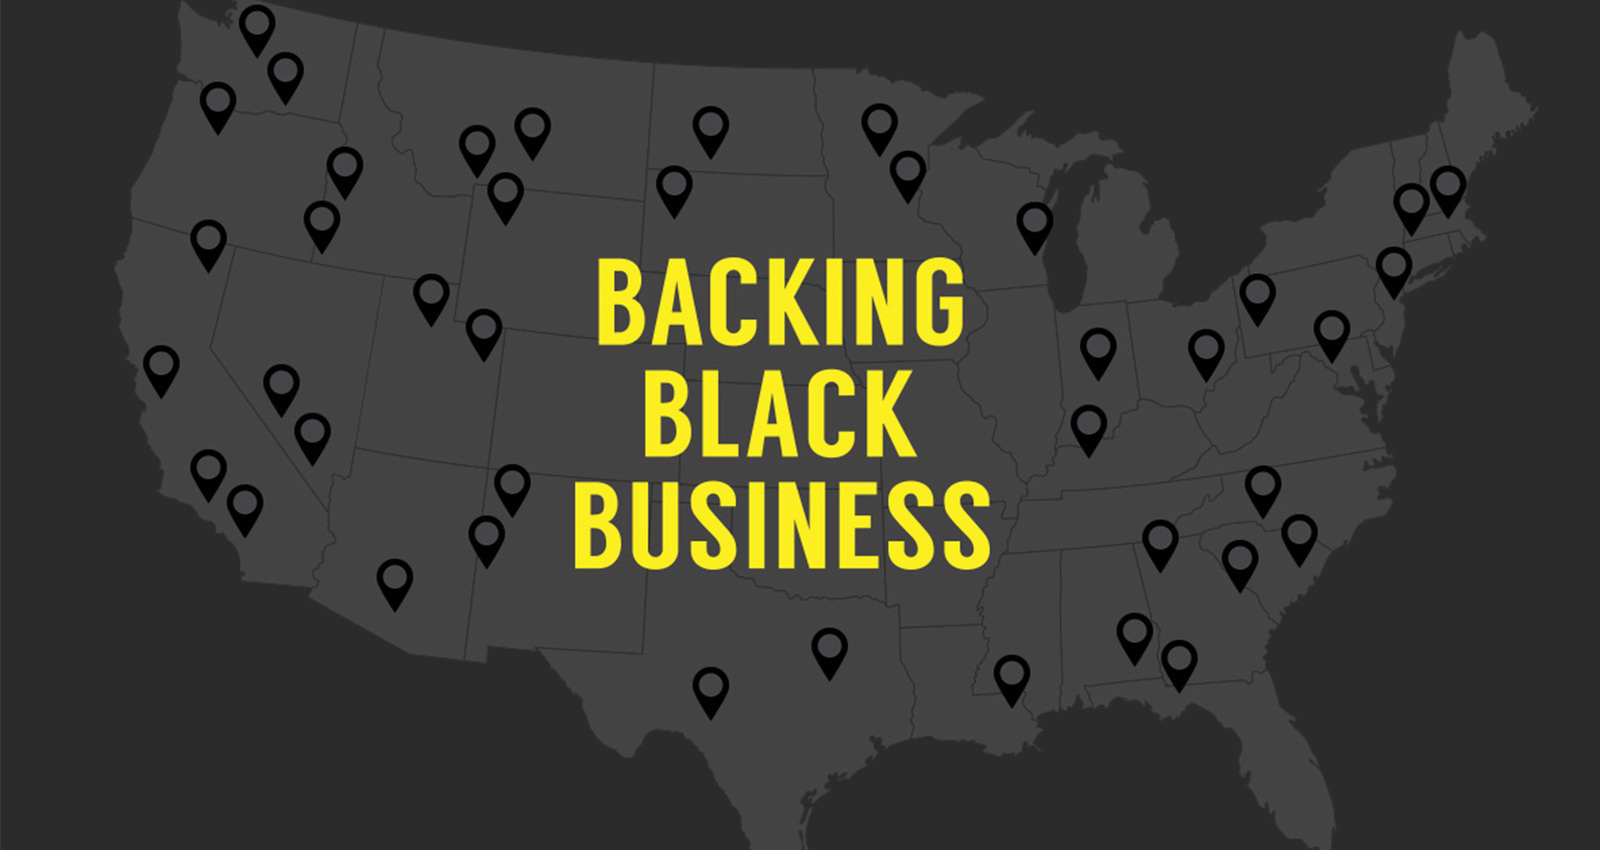 Backing Black Business